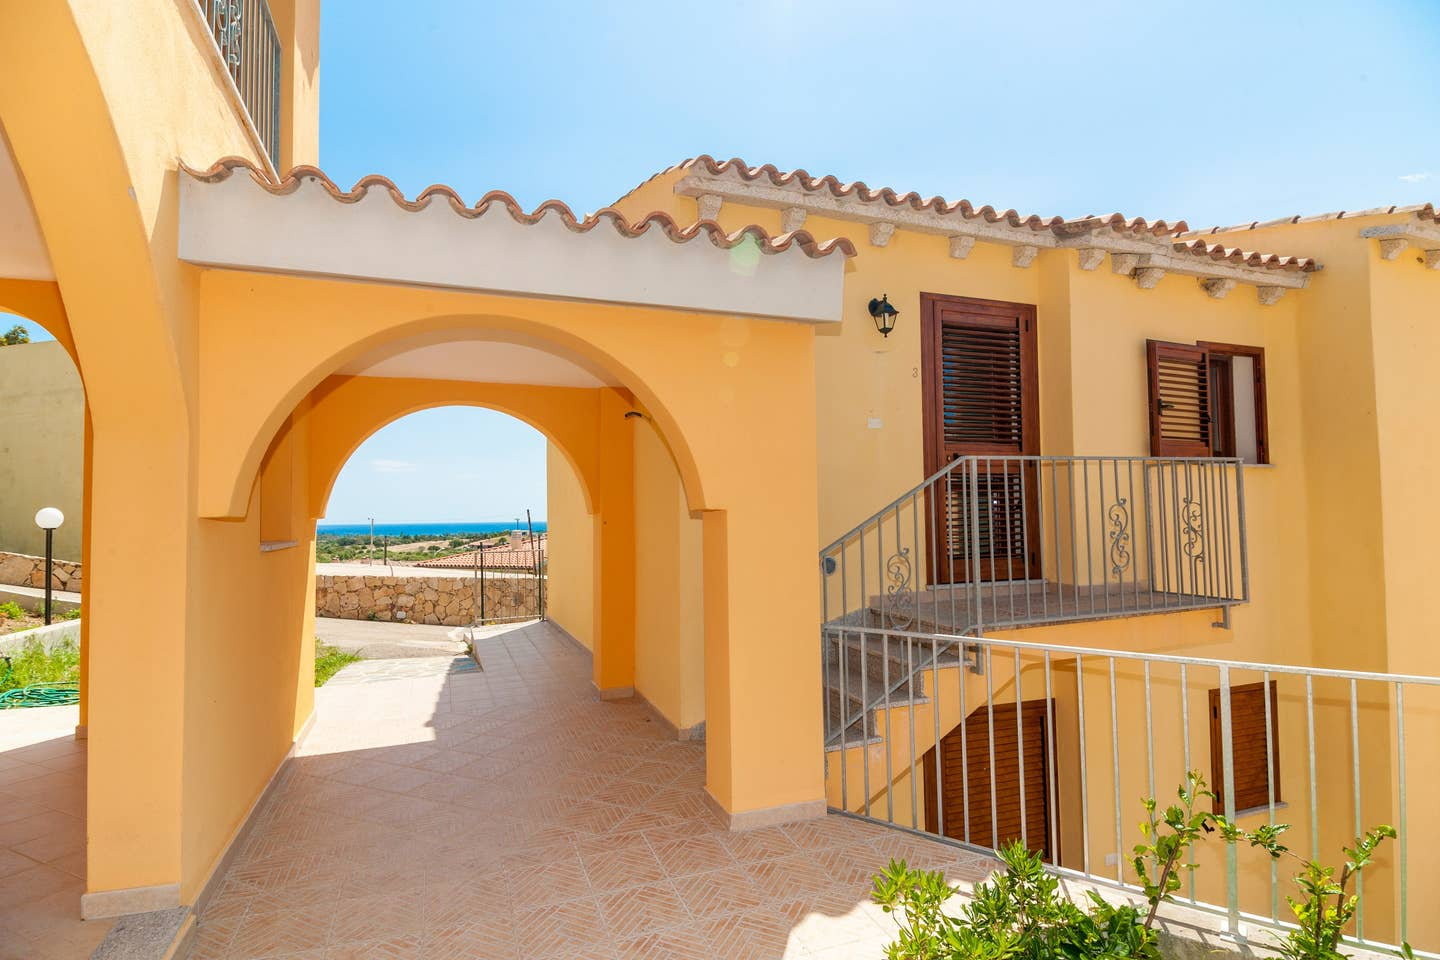 Apartment Bilocale Corte di Gallura 9 photo 18314177